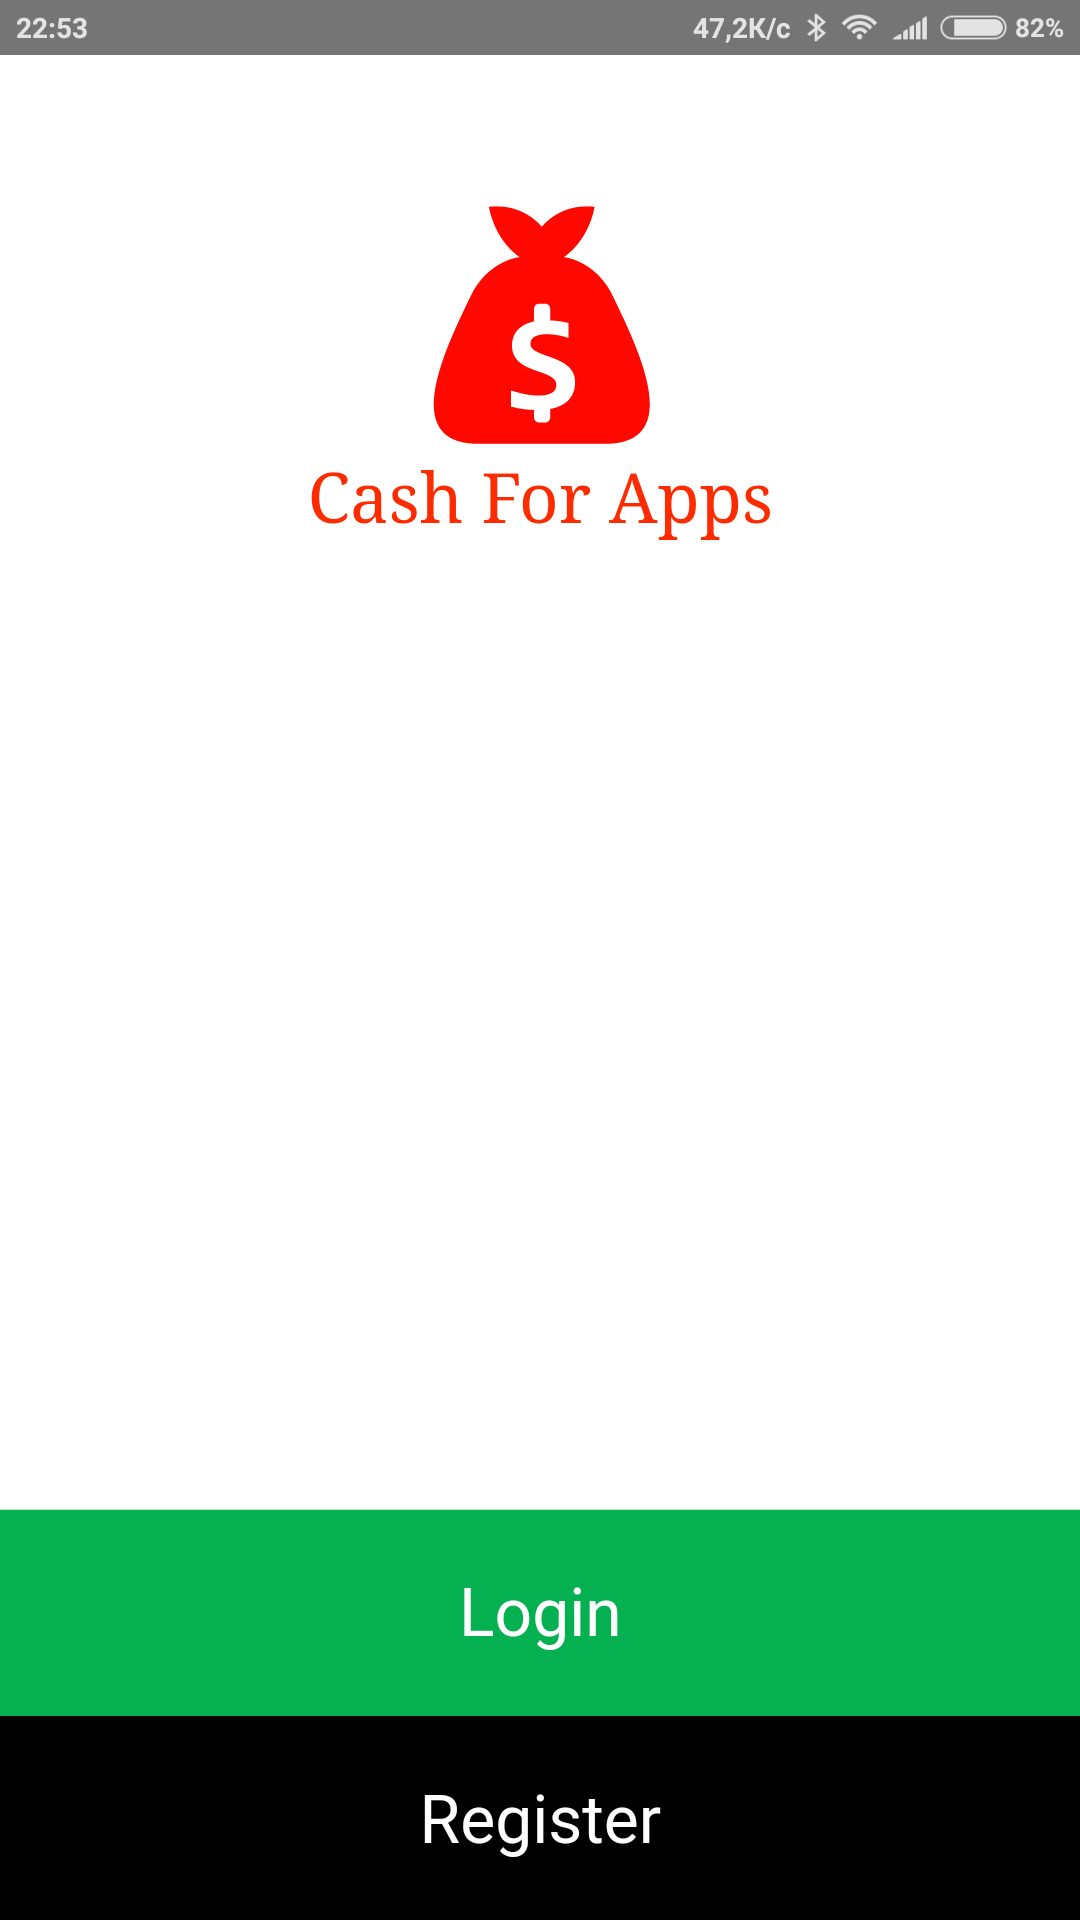 Регистрация Cash for Apps Android